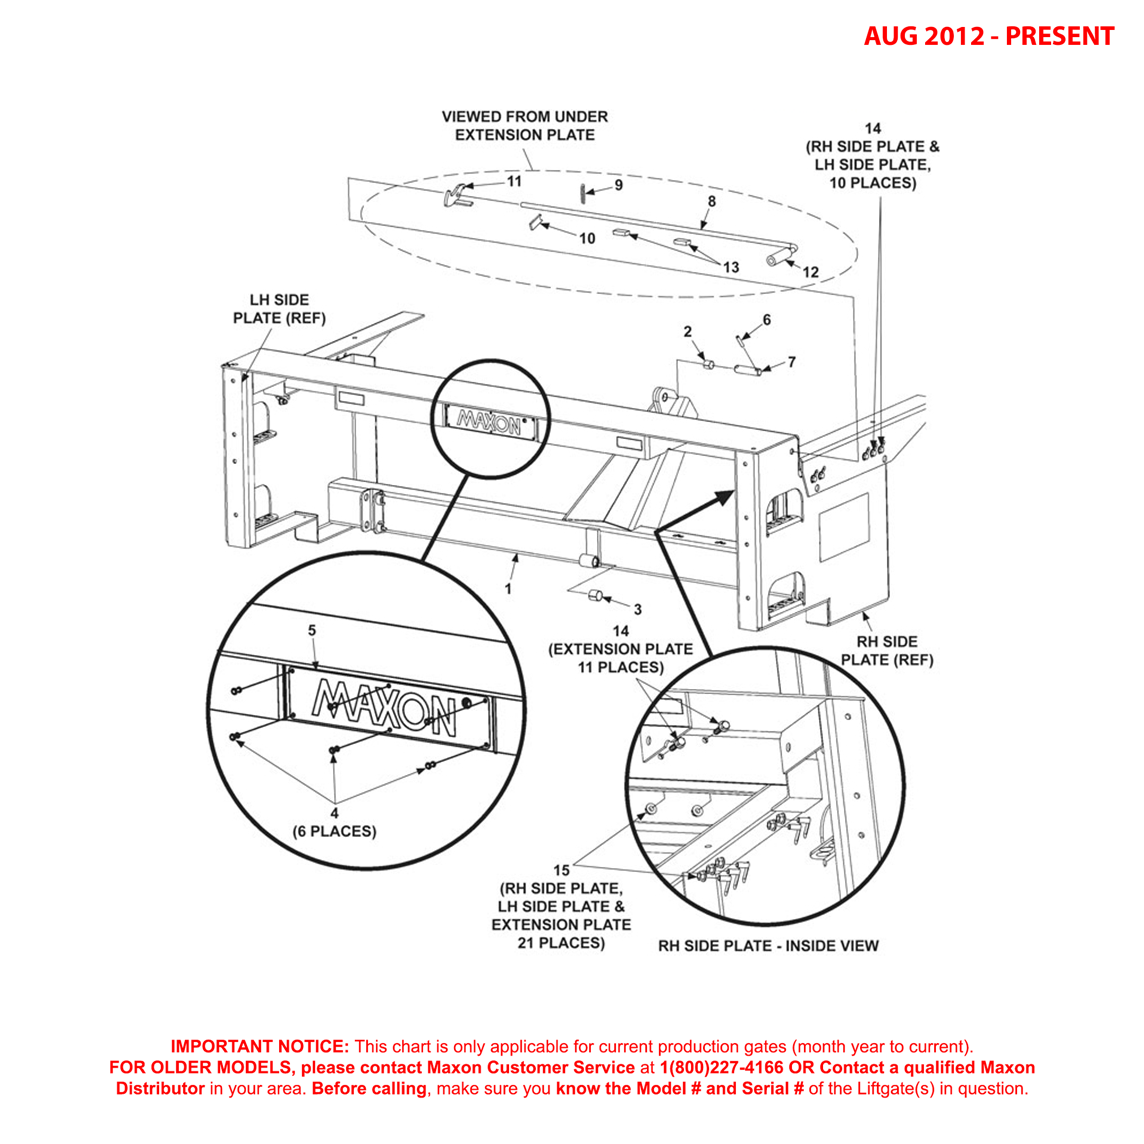 MTB (Aug 2012 - Present) Main Frame Assembly Diagram